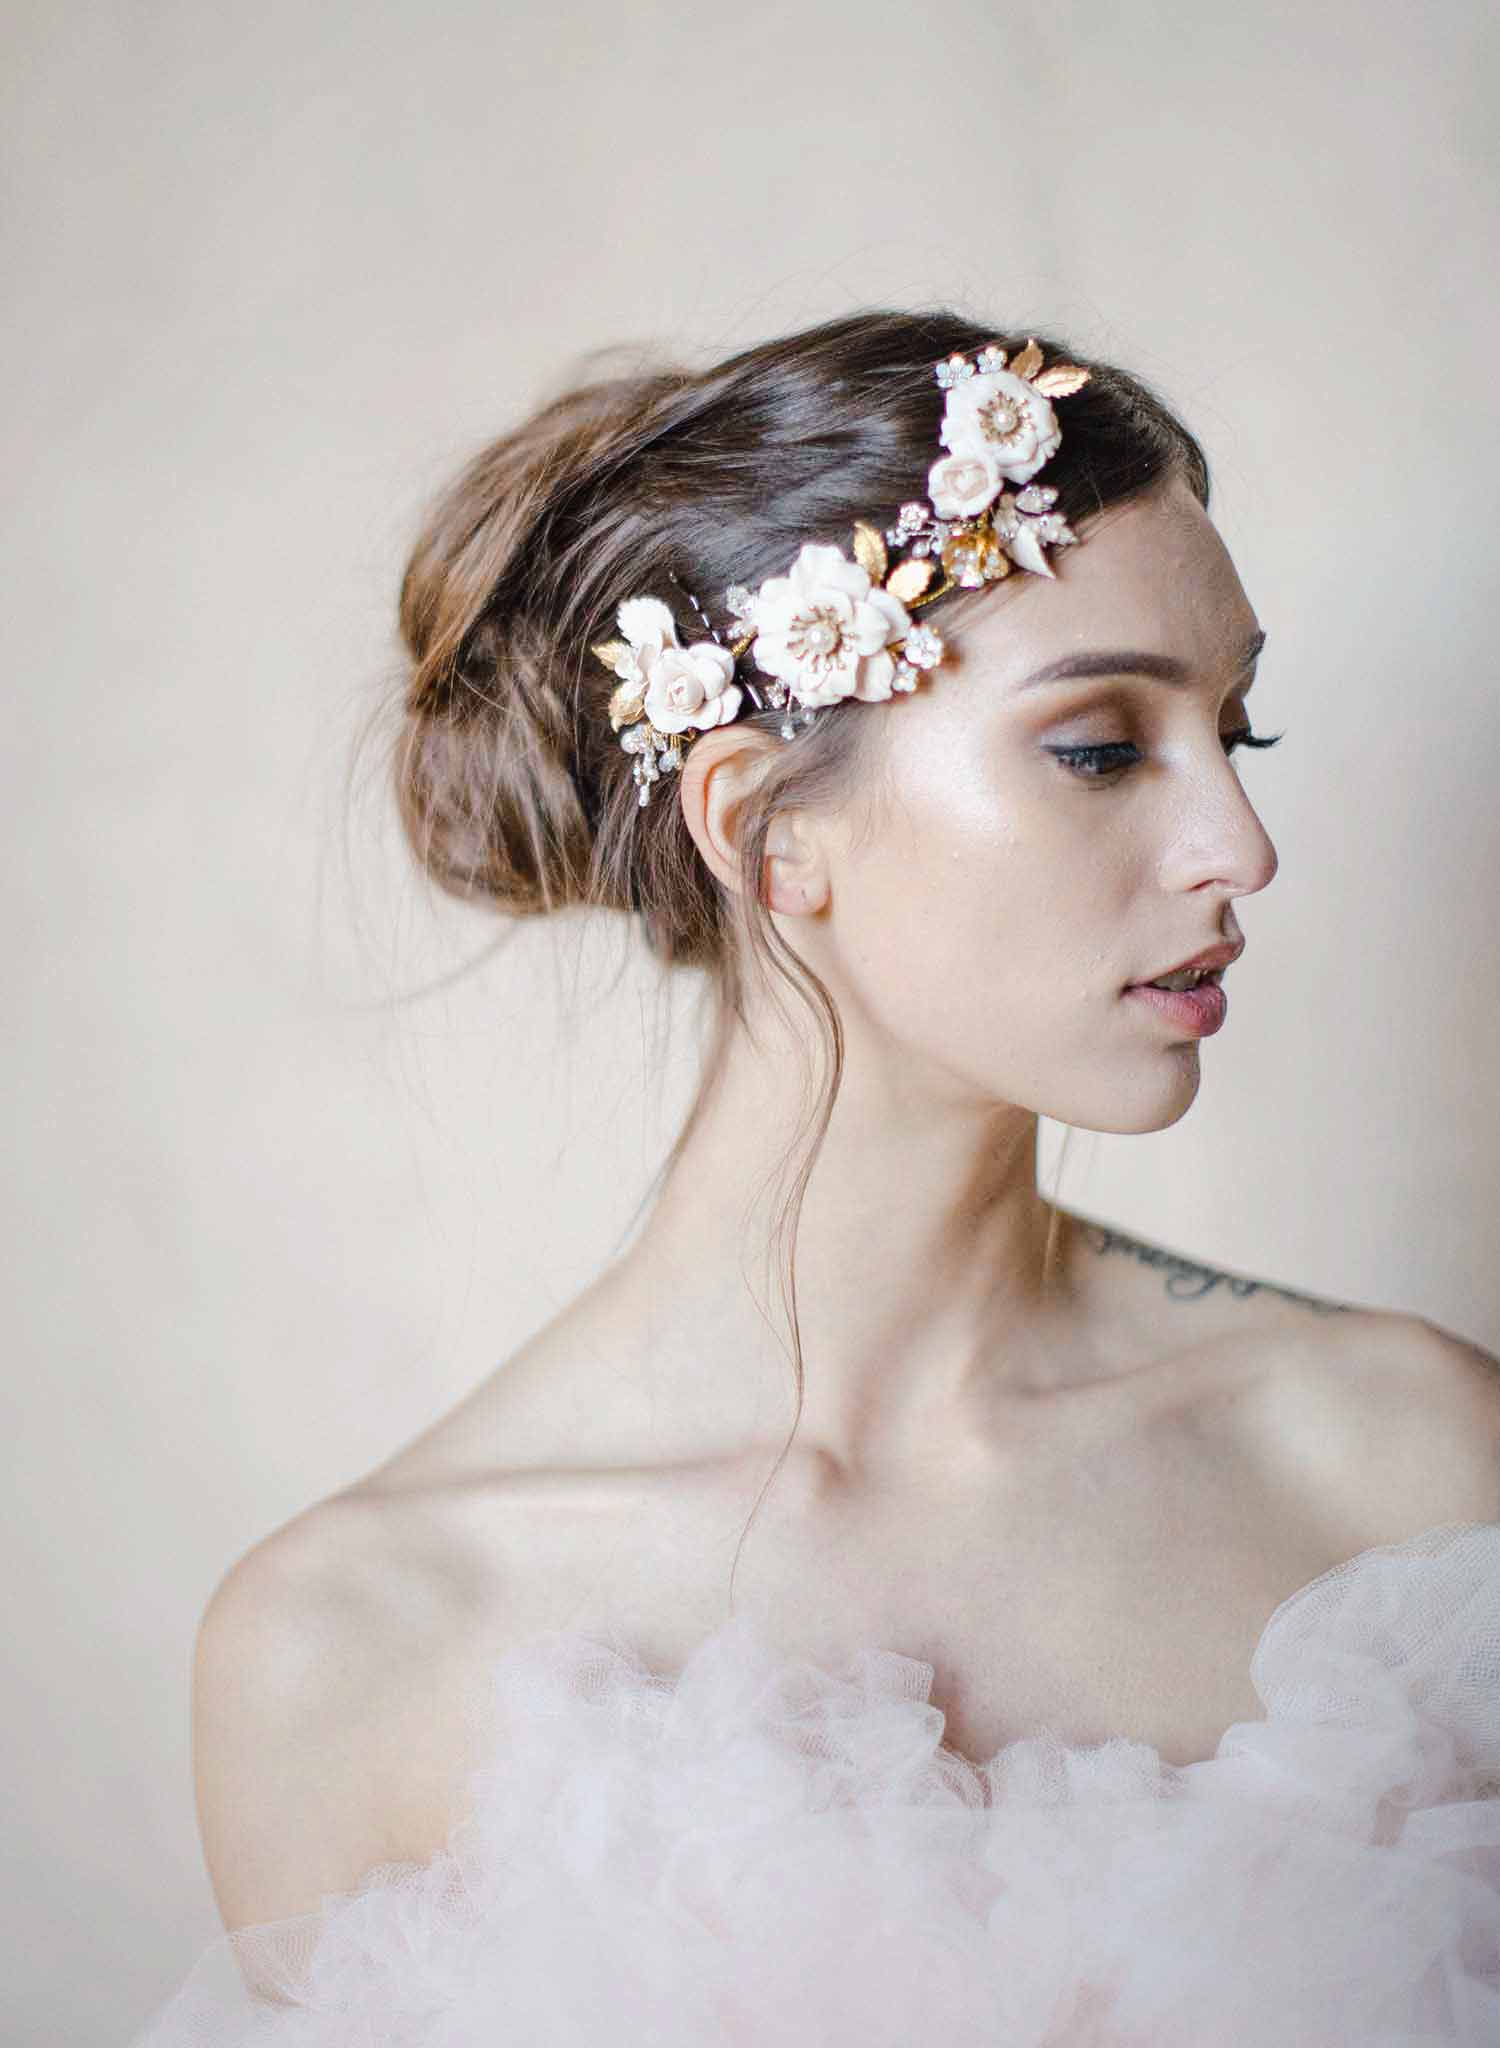 Climbing roses headpiece - Style #2017